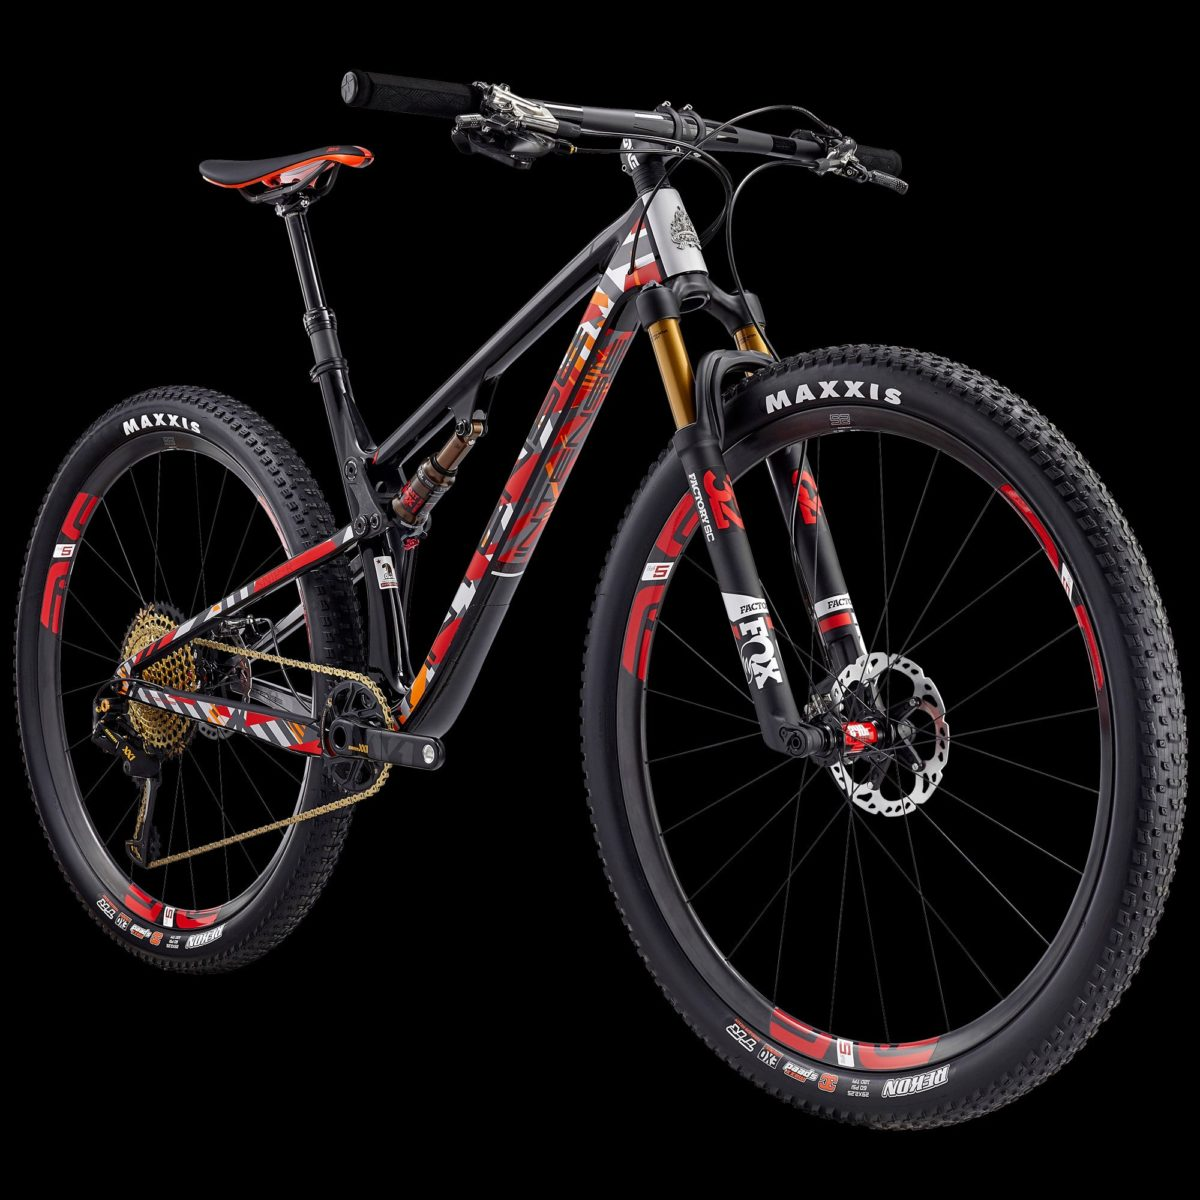 Intense Releases New Quot Sniper Quot Mountain Bike In Both Xc And